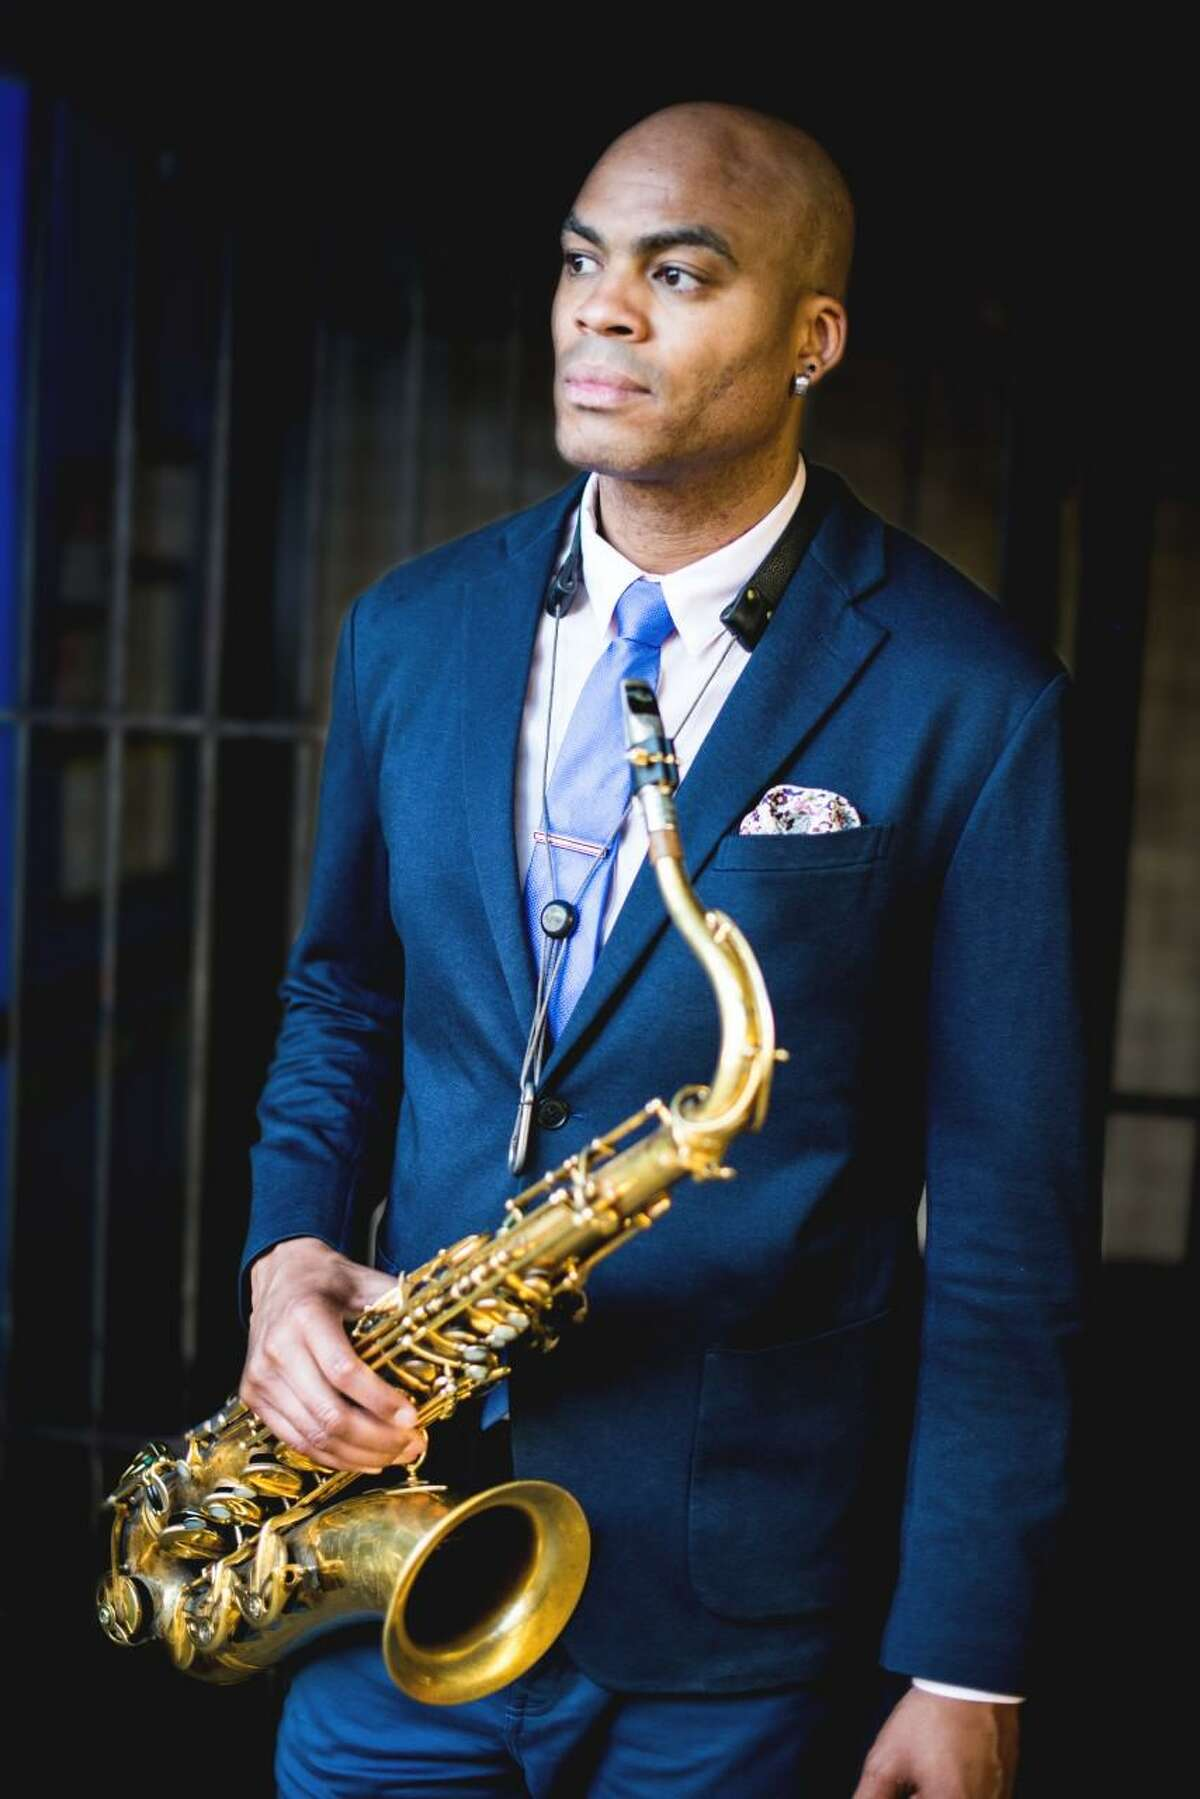 """The art museum, MoCA Westport 2021 Fall Benefit that is titled: """"The Art of Jazz,"""" will be an evening celebration of art, music, and giving, that will feature a silent auction, live auction, and live music by Grammy Award-winning Jazz Tenor Saxophonist Wayne Escoffery, (pictured), at the art museum on Saturday, Sept. 18. The live auction is also being hosted by Dave Briggs, of Westport, who is also a former anchor at the CNN, NBC Sports, and Fox News television networks."""